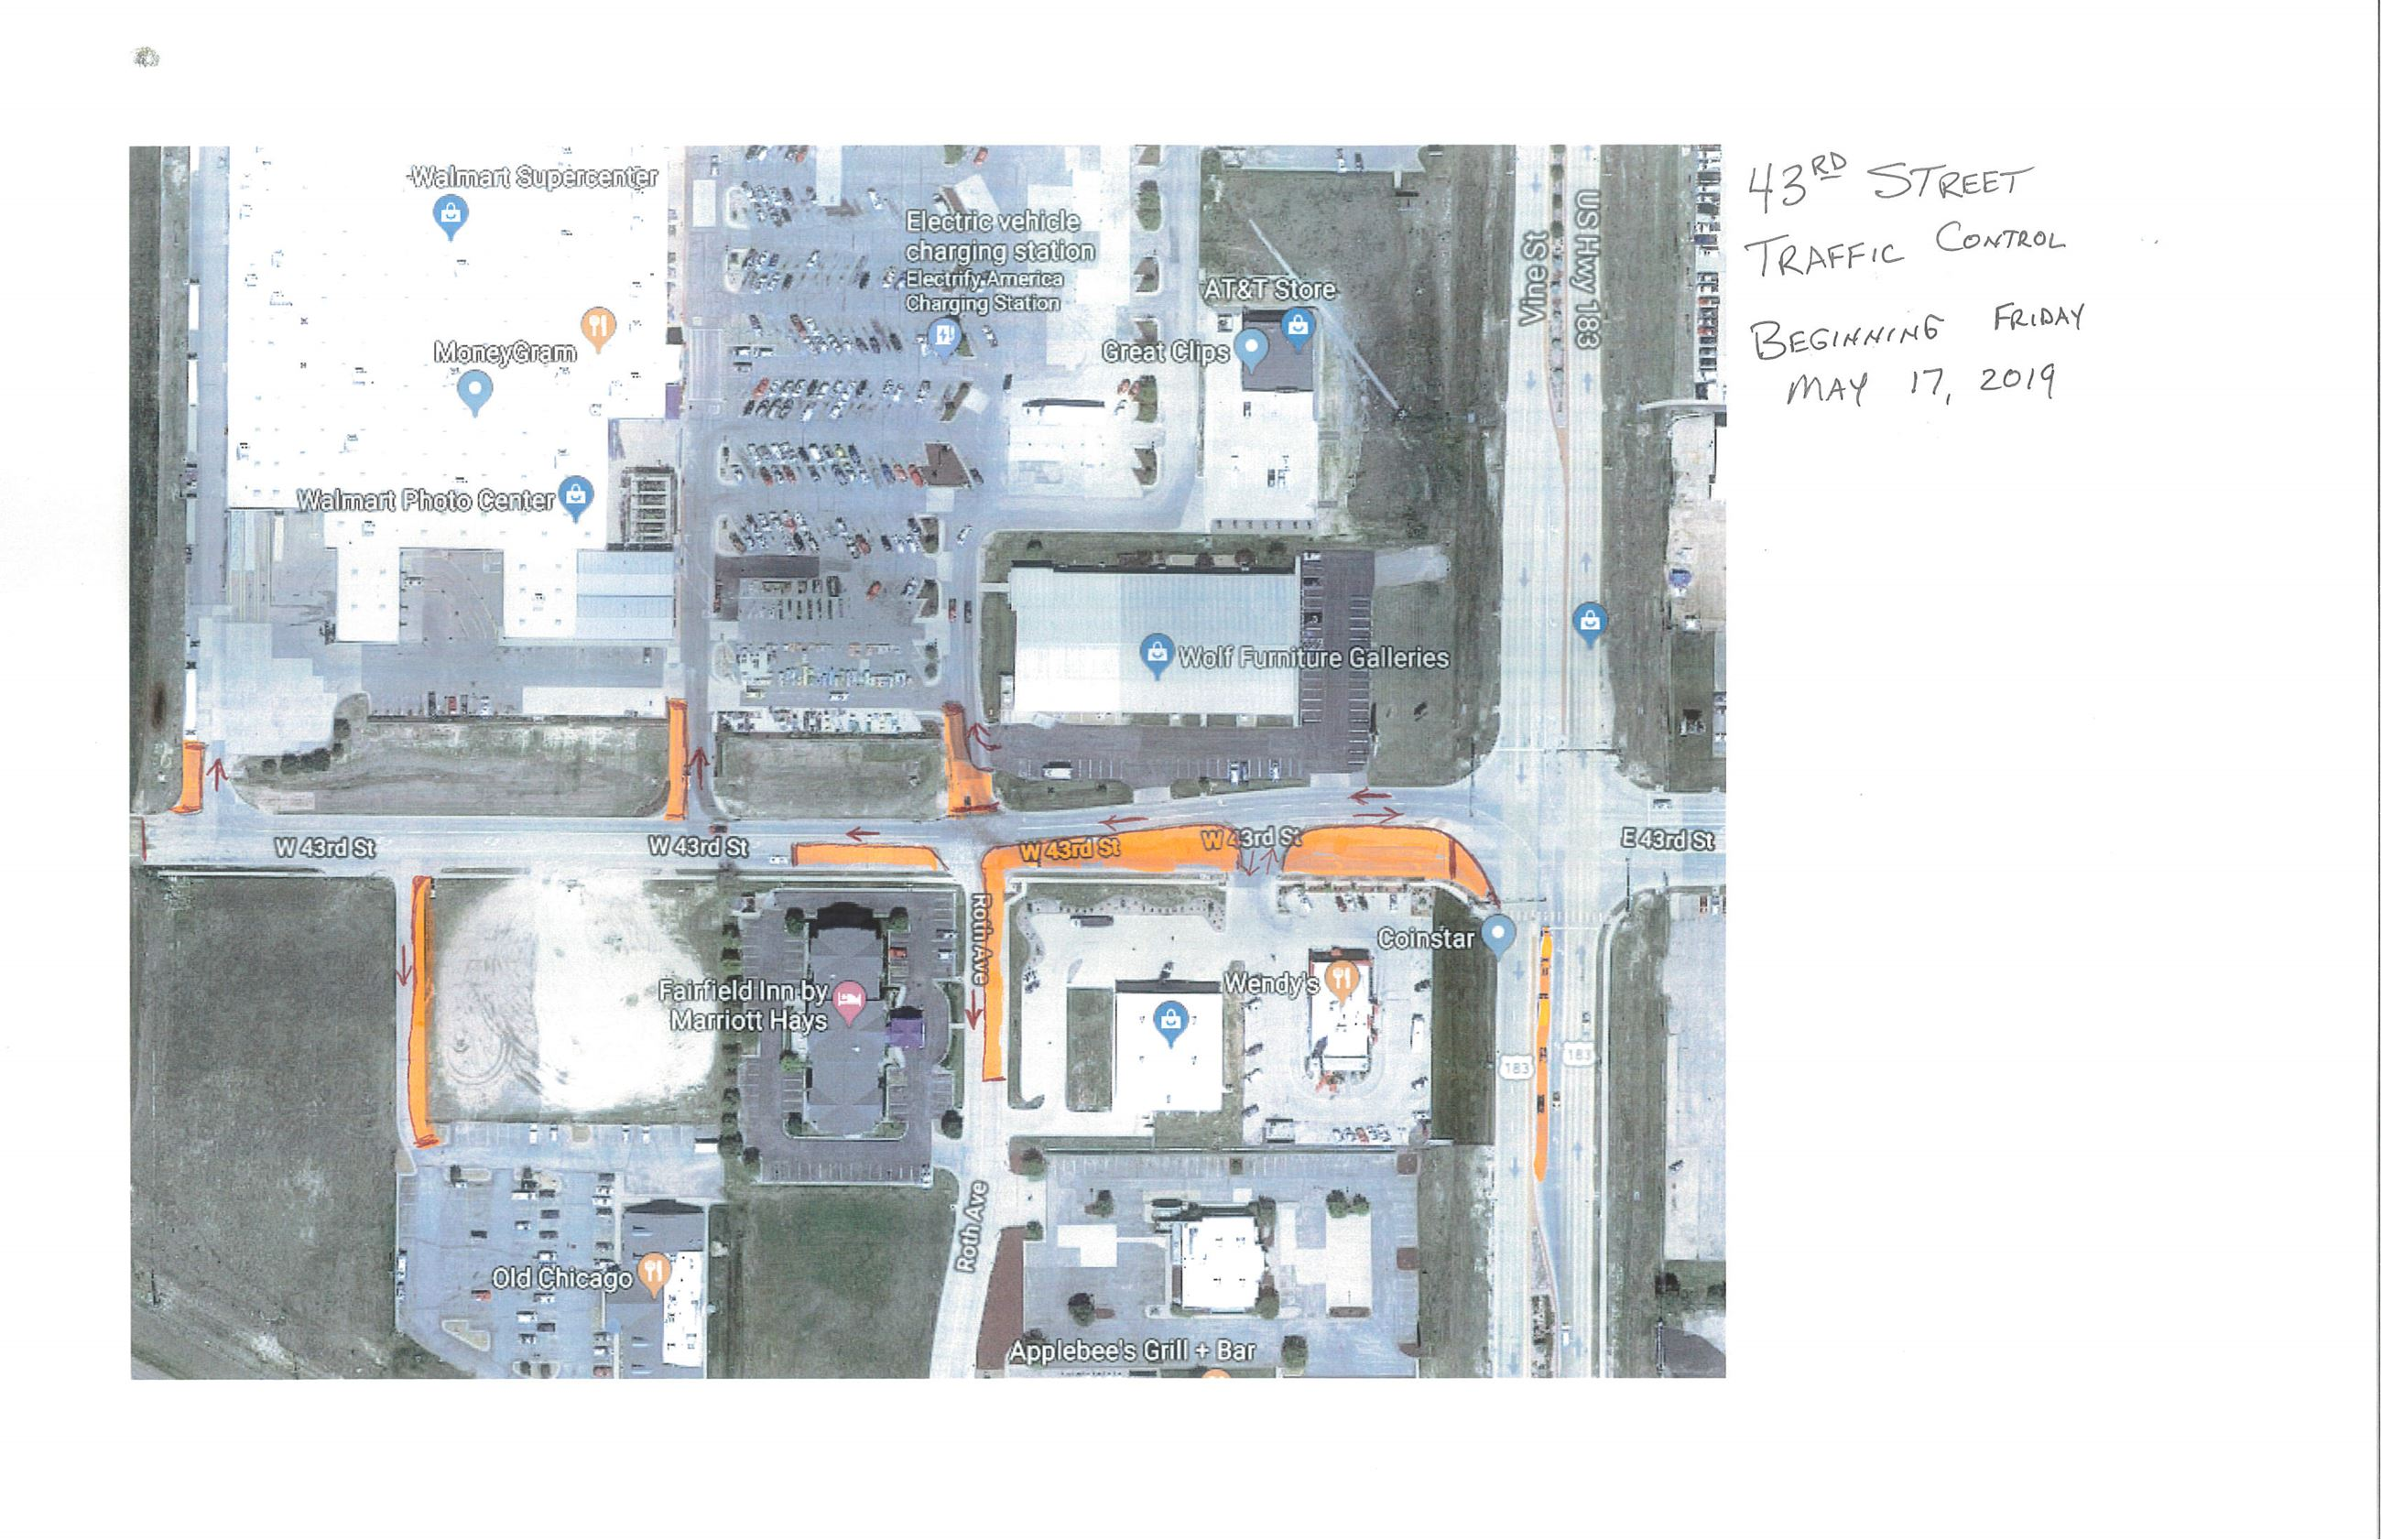 43rd Street Traffic Control - May 17th